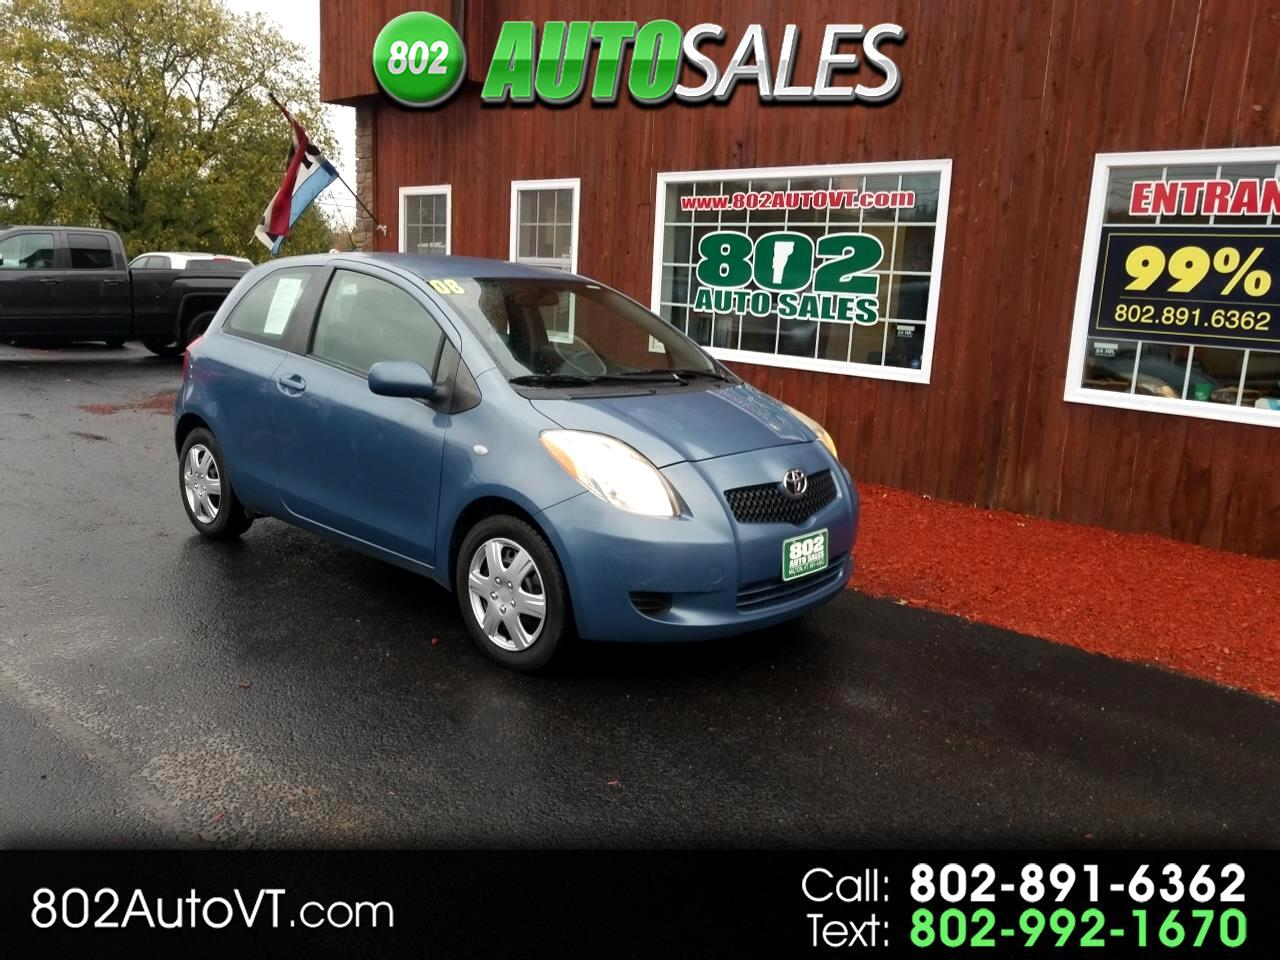 2008 Toyota Yaris 3dr HB Man (Natl)